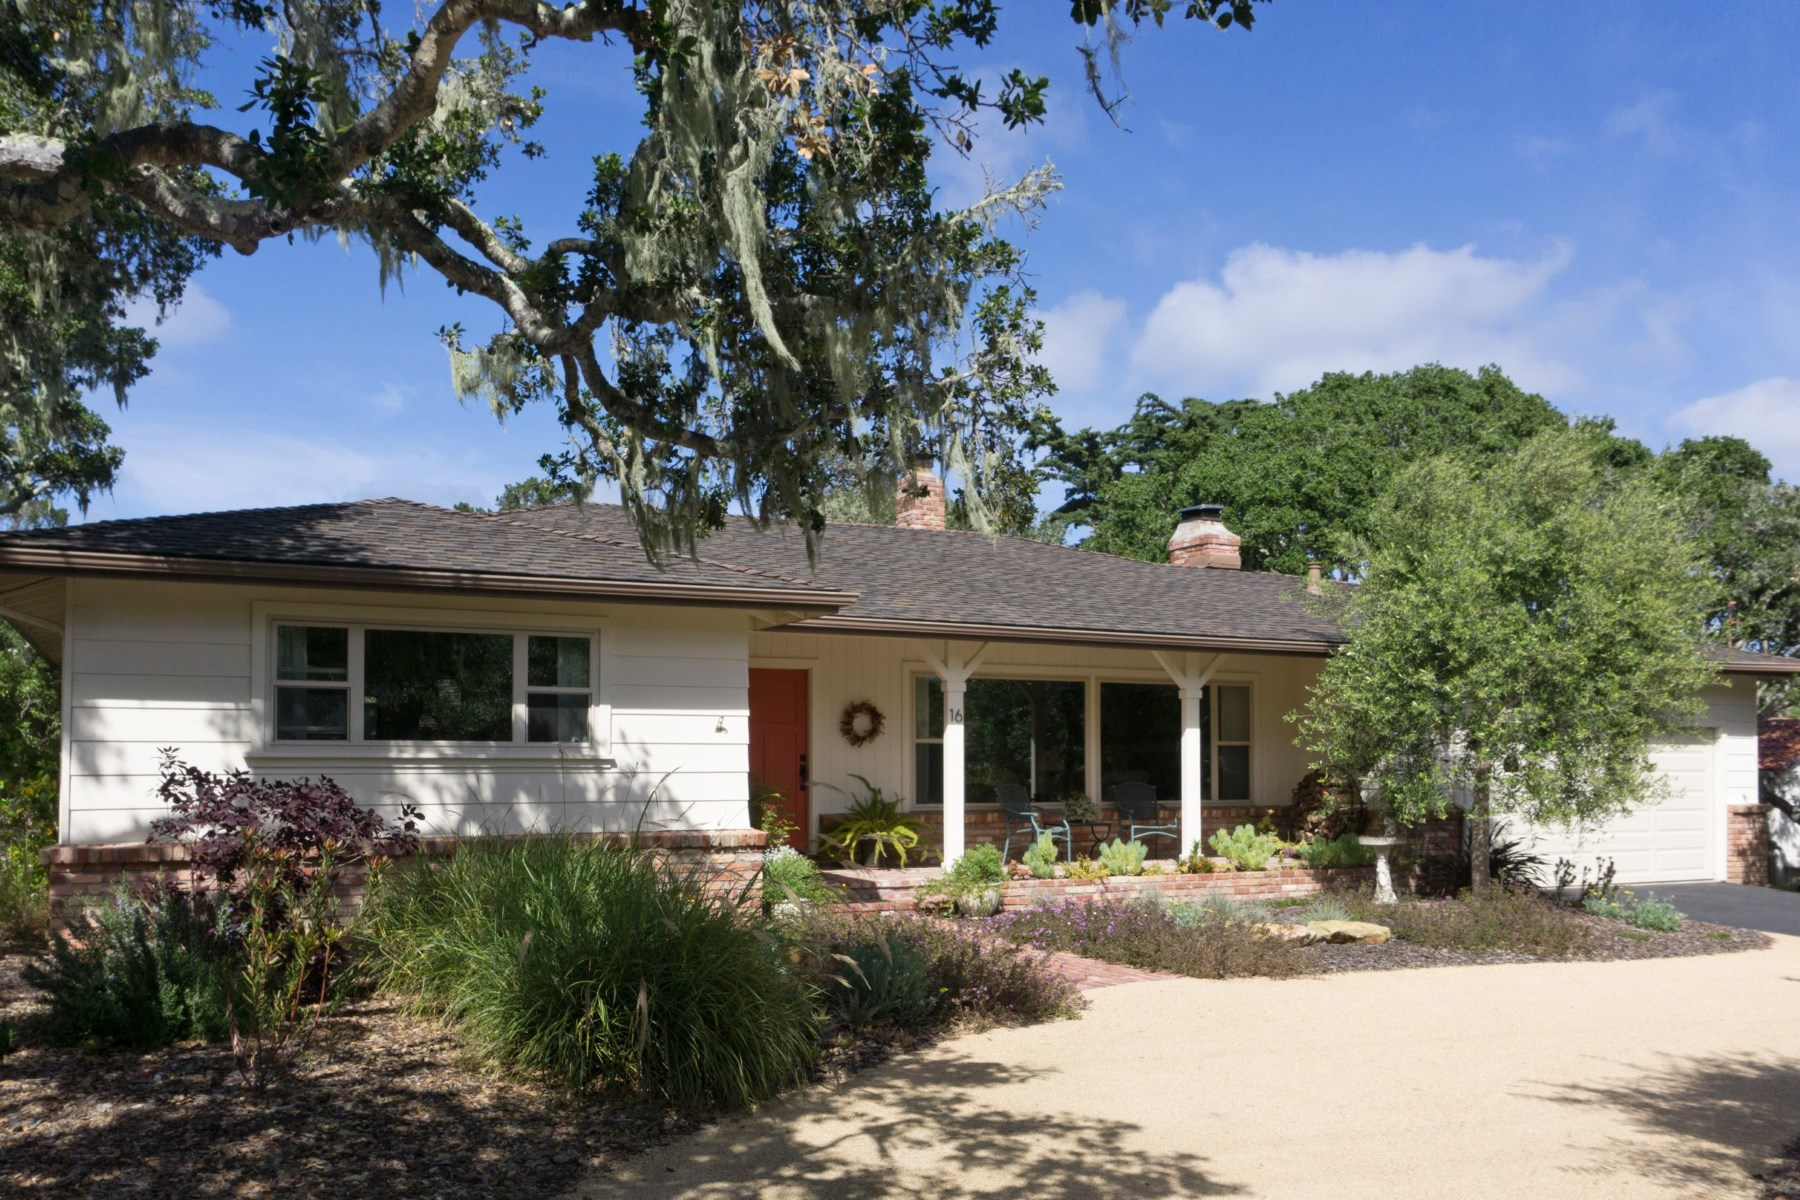 Single Family Home for Sale at Fantastic Floor Plan and Grounds 16 El Caminito Del Sur Monterey, California, 93940 United States